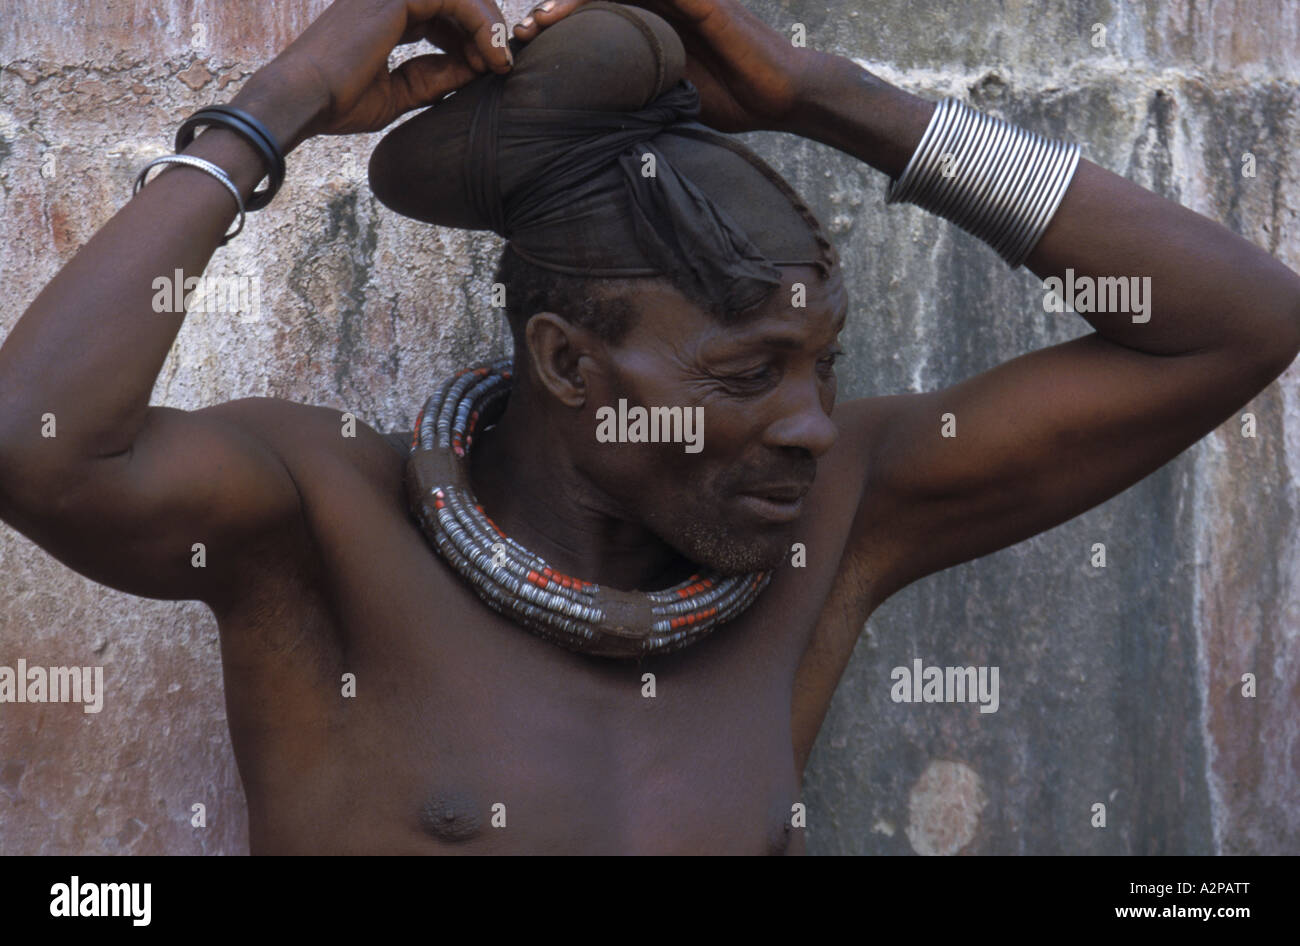 Himba, chief with typical headdress and trappings on the neck, Namibia, Kunene, Kaokoland - Stock Image